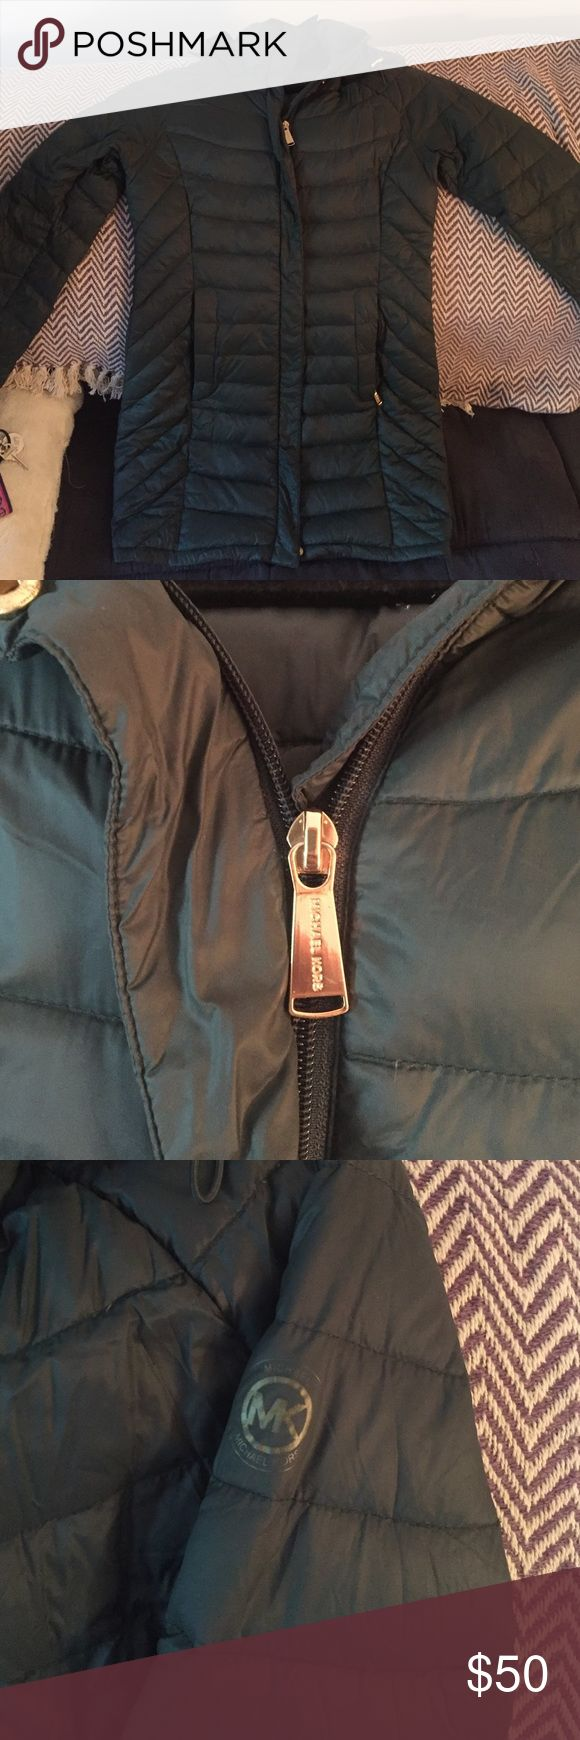 Michael Kors down coat Dark green Michael Kors coat. Falls right before the knee. Light down. Gently worn. In good condition. Size small. Michael Kors Jackets & Coats Puffers